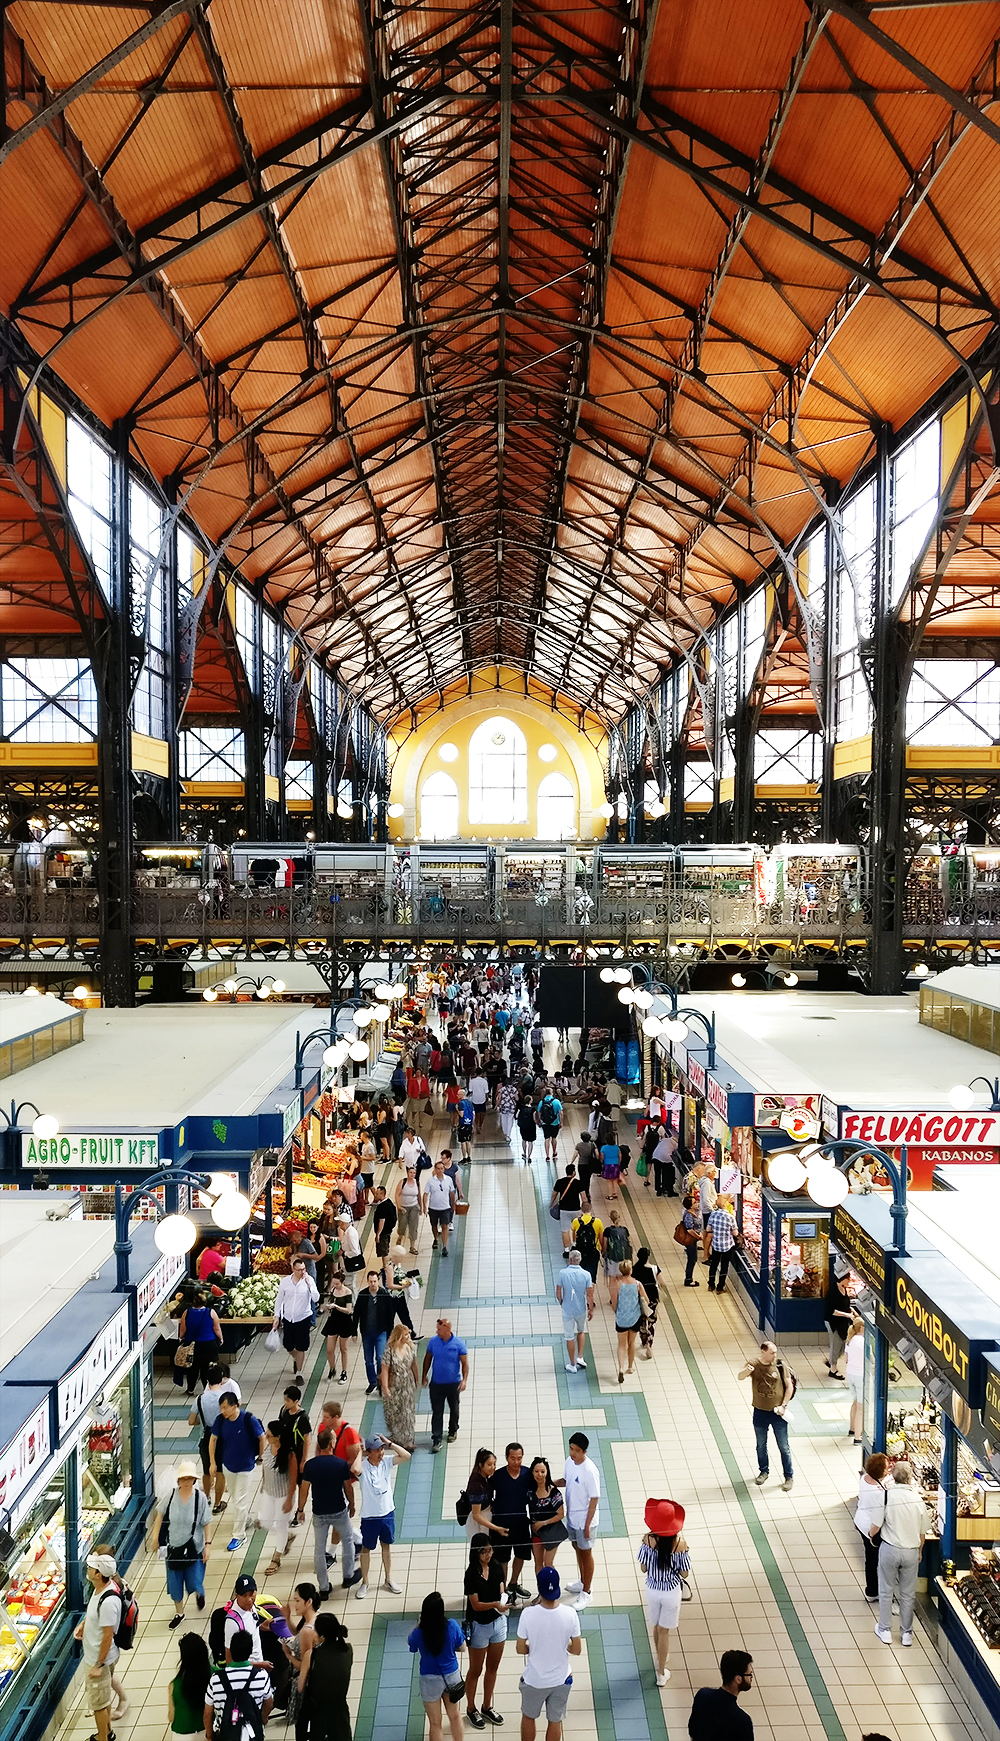 Discover the Great Market Hall, not every tourist attraction is pricey - 12 mistakes to avoid when visiting Budapest, Hungary | Aliz's Wonderland #Budapest #Budapestguide #Hungary